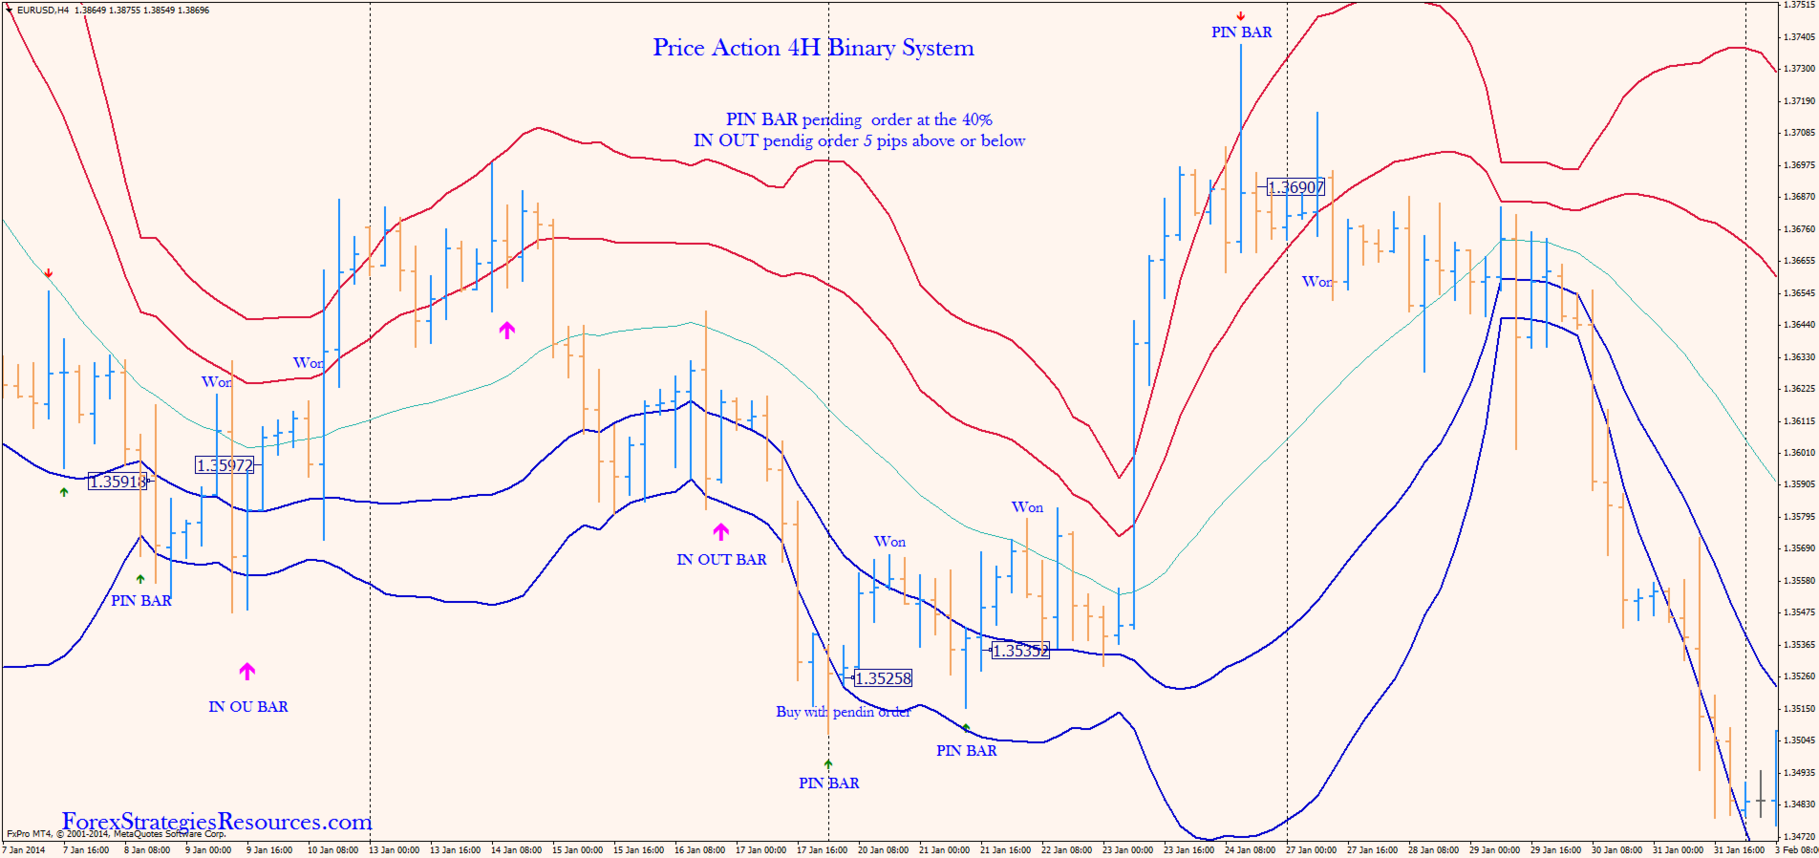 Binary options trading using price action